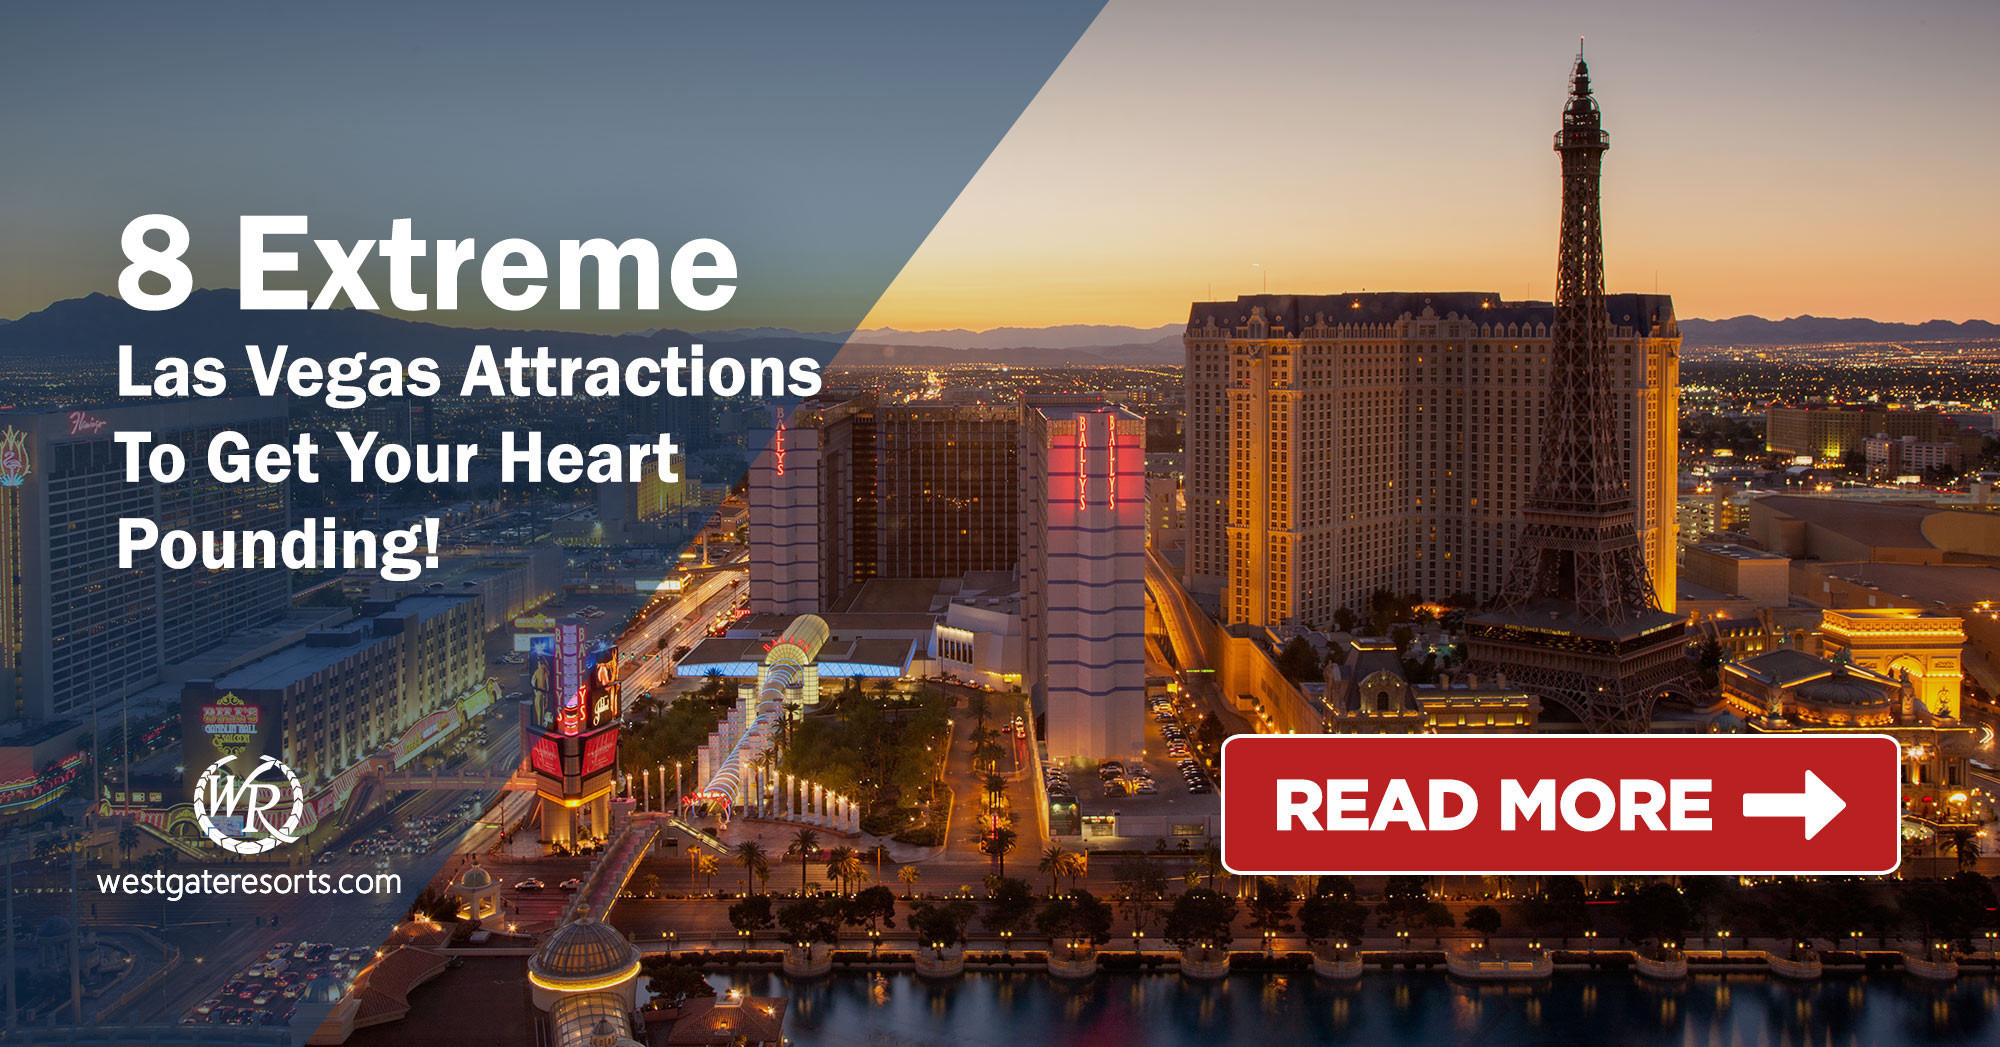 8 Extreme Las Vegas Attractions To Get Your Heart Pounding